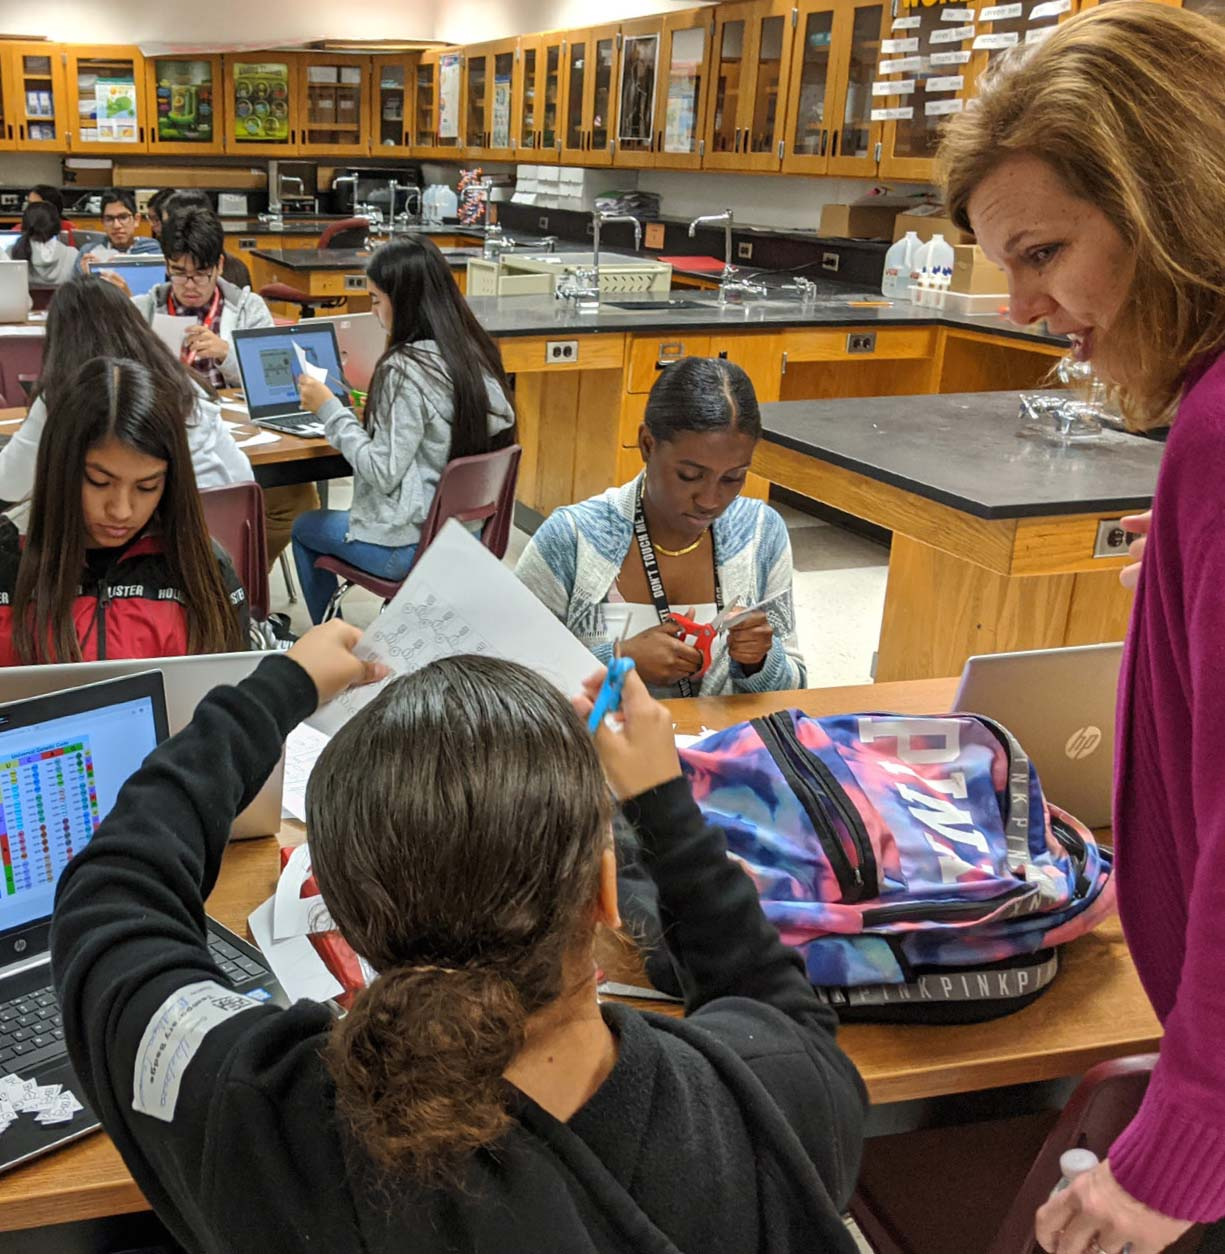 """During the Learning Walk hosted for the """"Districts for Impact"""" Five Conditions Learning Cadre, Assistant Superintendent for Middle Schools Marcy Hetzler-Nettles interacts with students from Immokalee High School."""